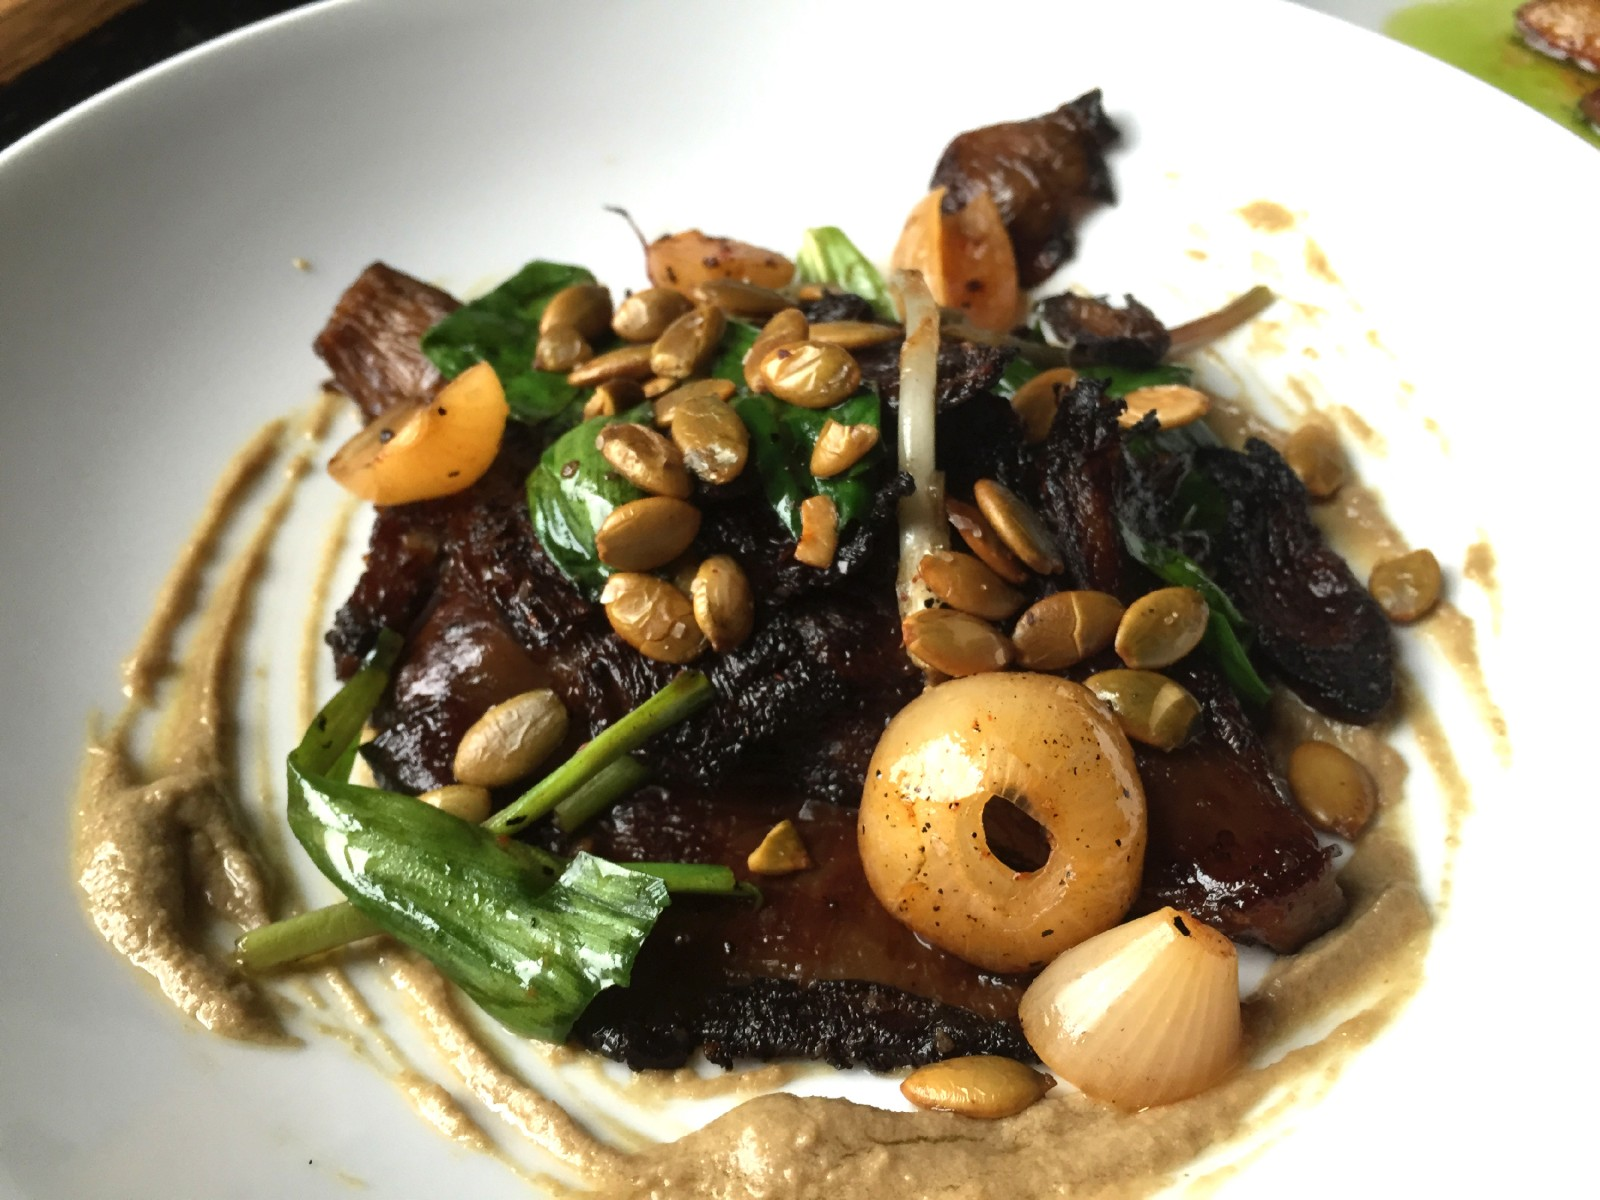 Flat 12 mushrooms, grown in Buffalo, are served with tangy shallots, toasted pumpkin seeds, fish-sauce-fermented ramps, and pumpkinseed sauce. (Christa Glennie Seychew/Special to The News)